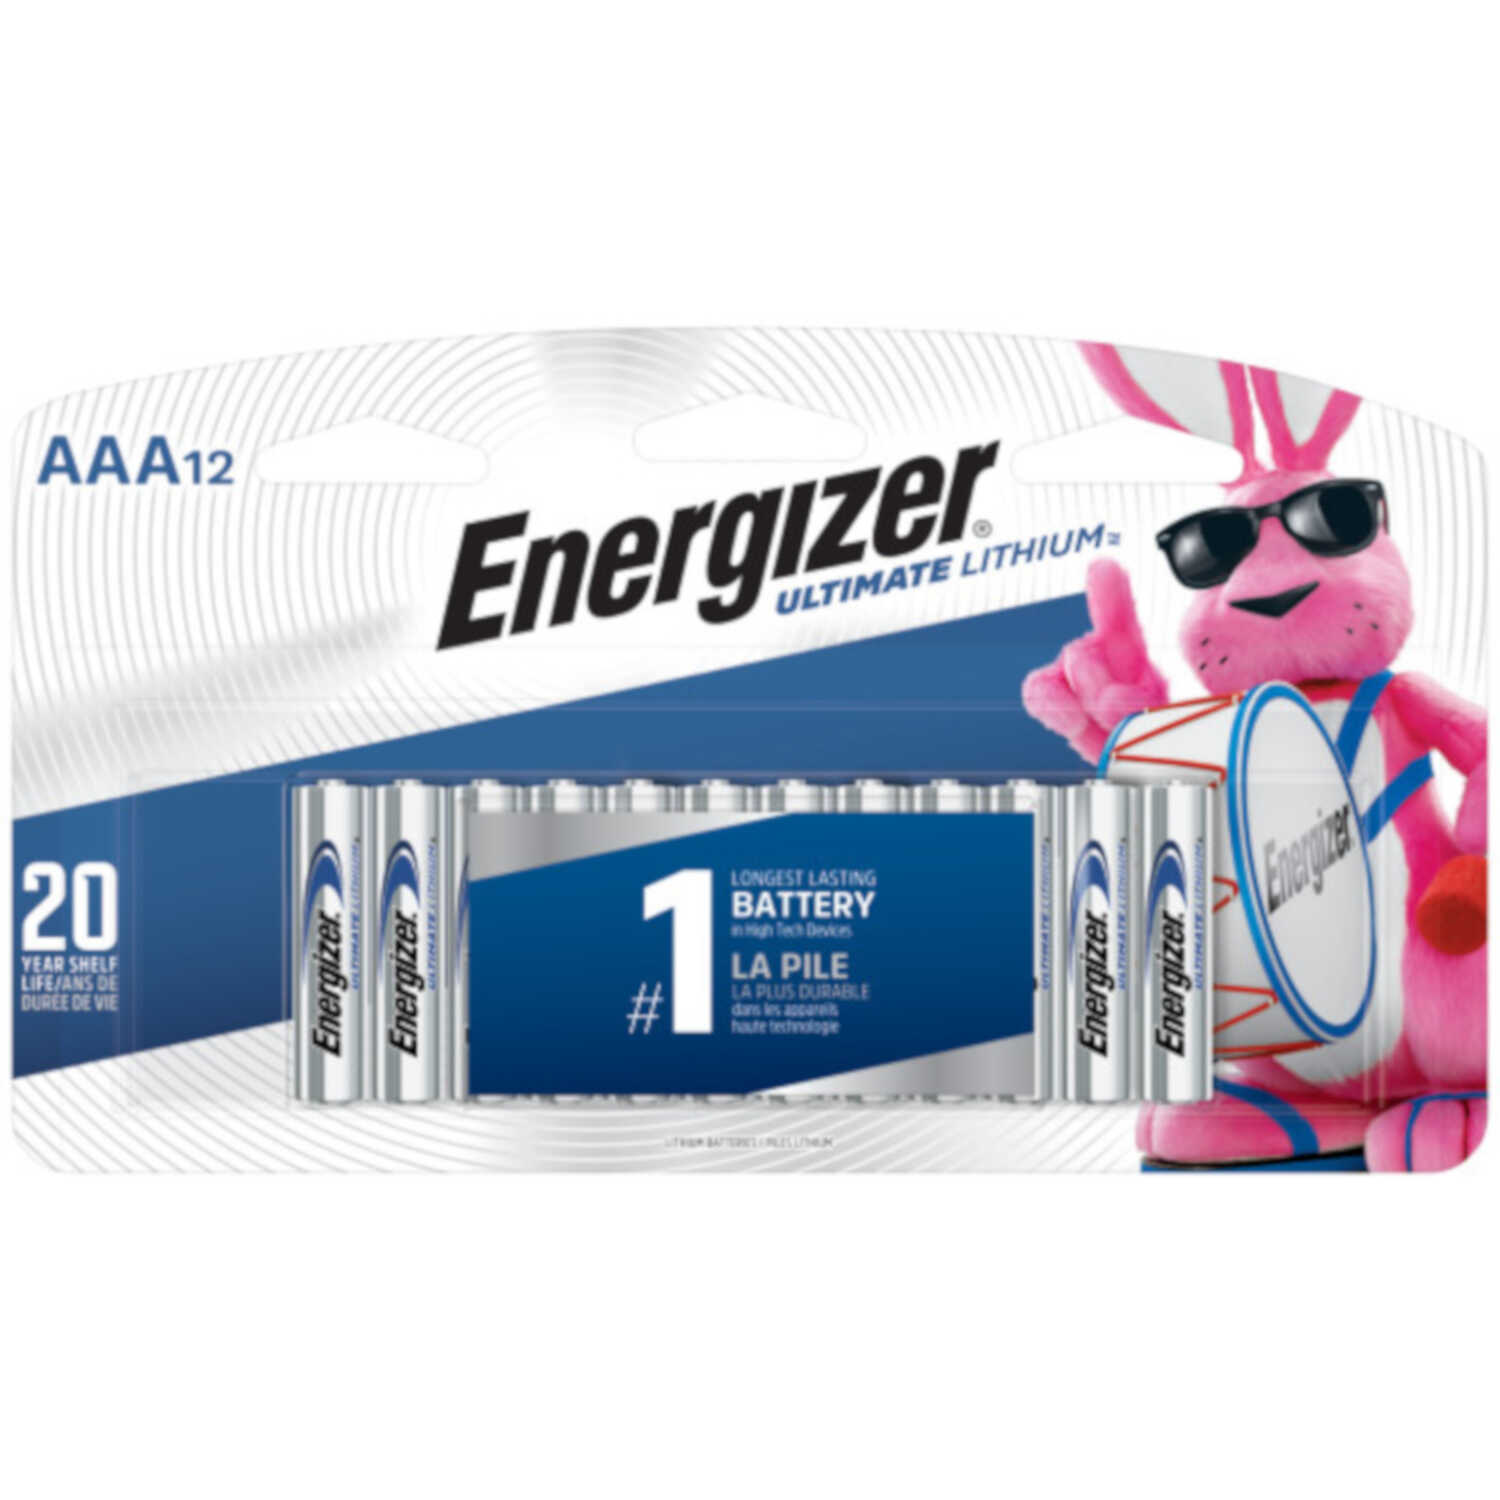 Energizer  Ultimate  Lithium Ion  AAA  1.5 volt Batteries  12 pk